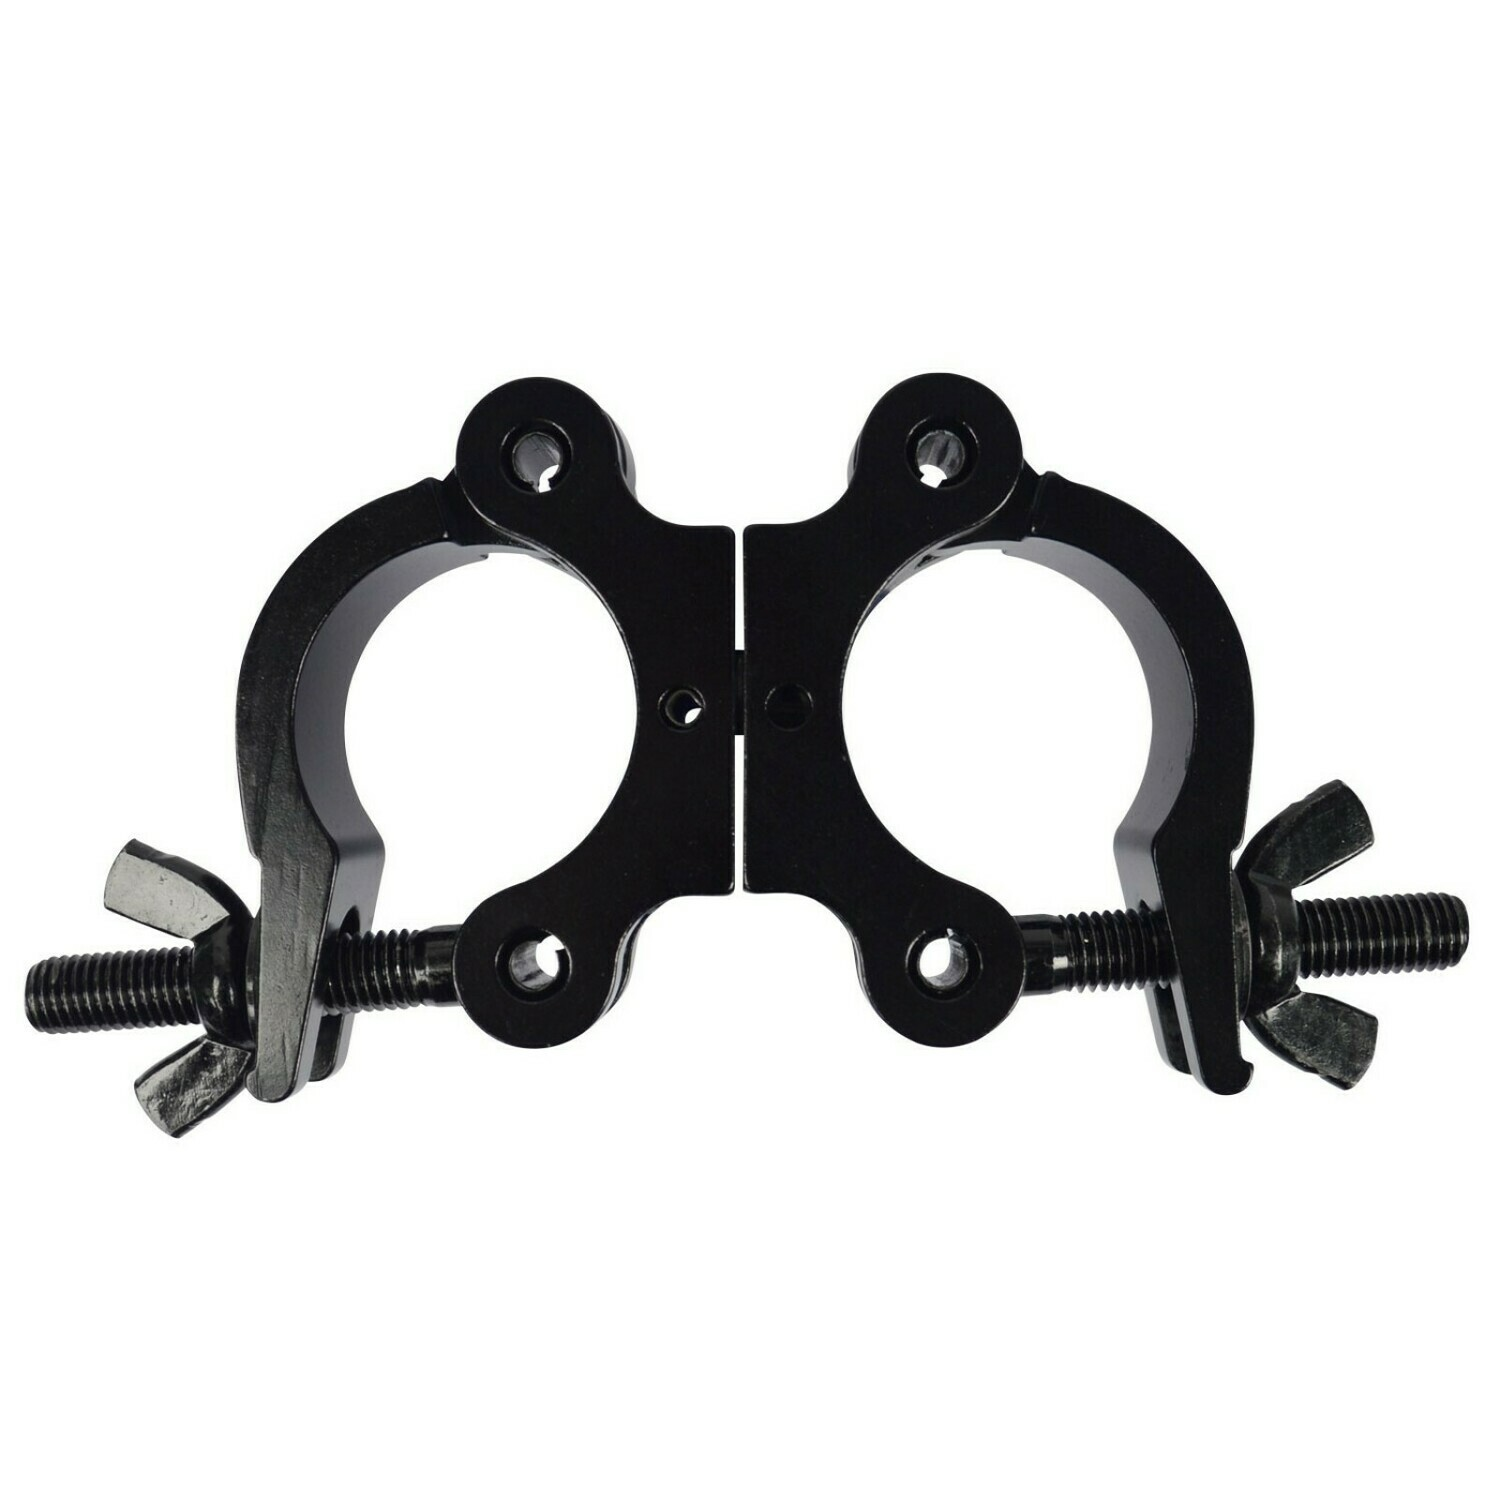 Contestage SWIVEL CLAMP 302-V2 B